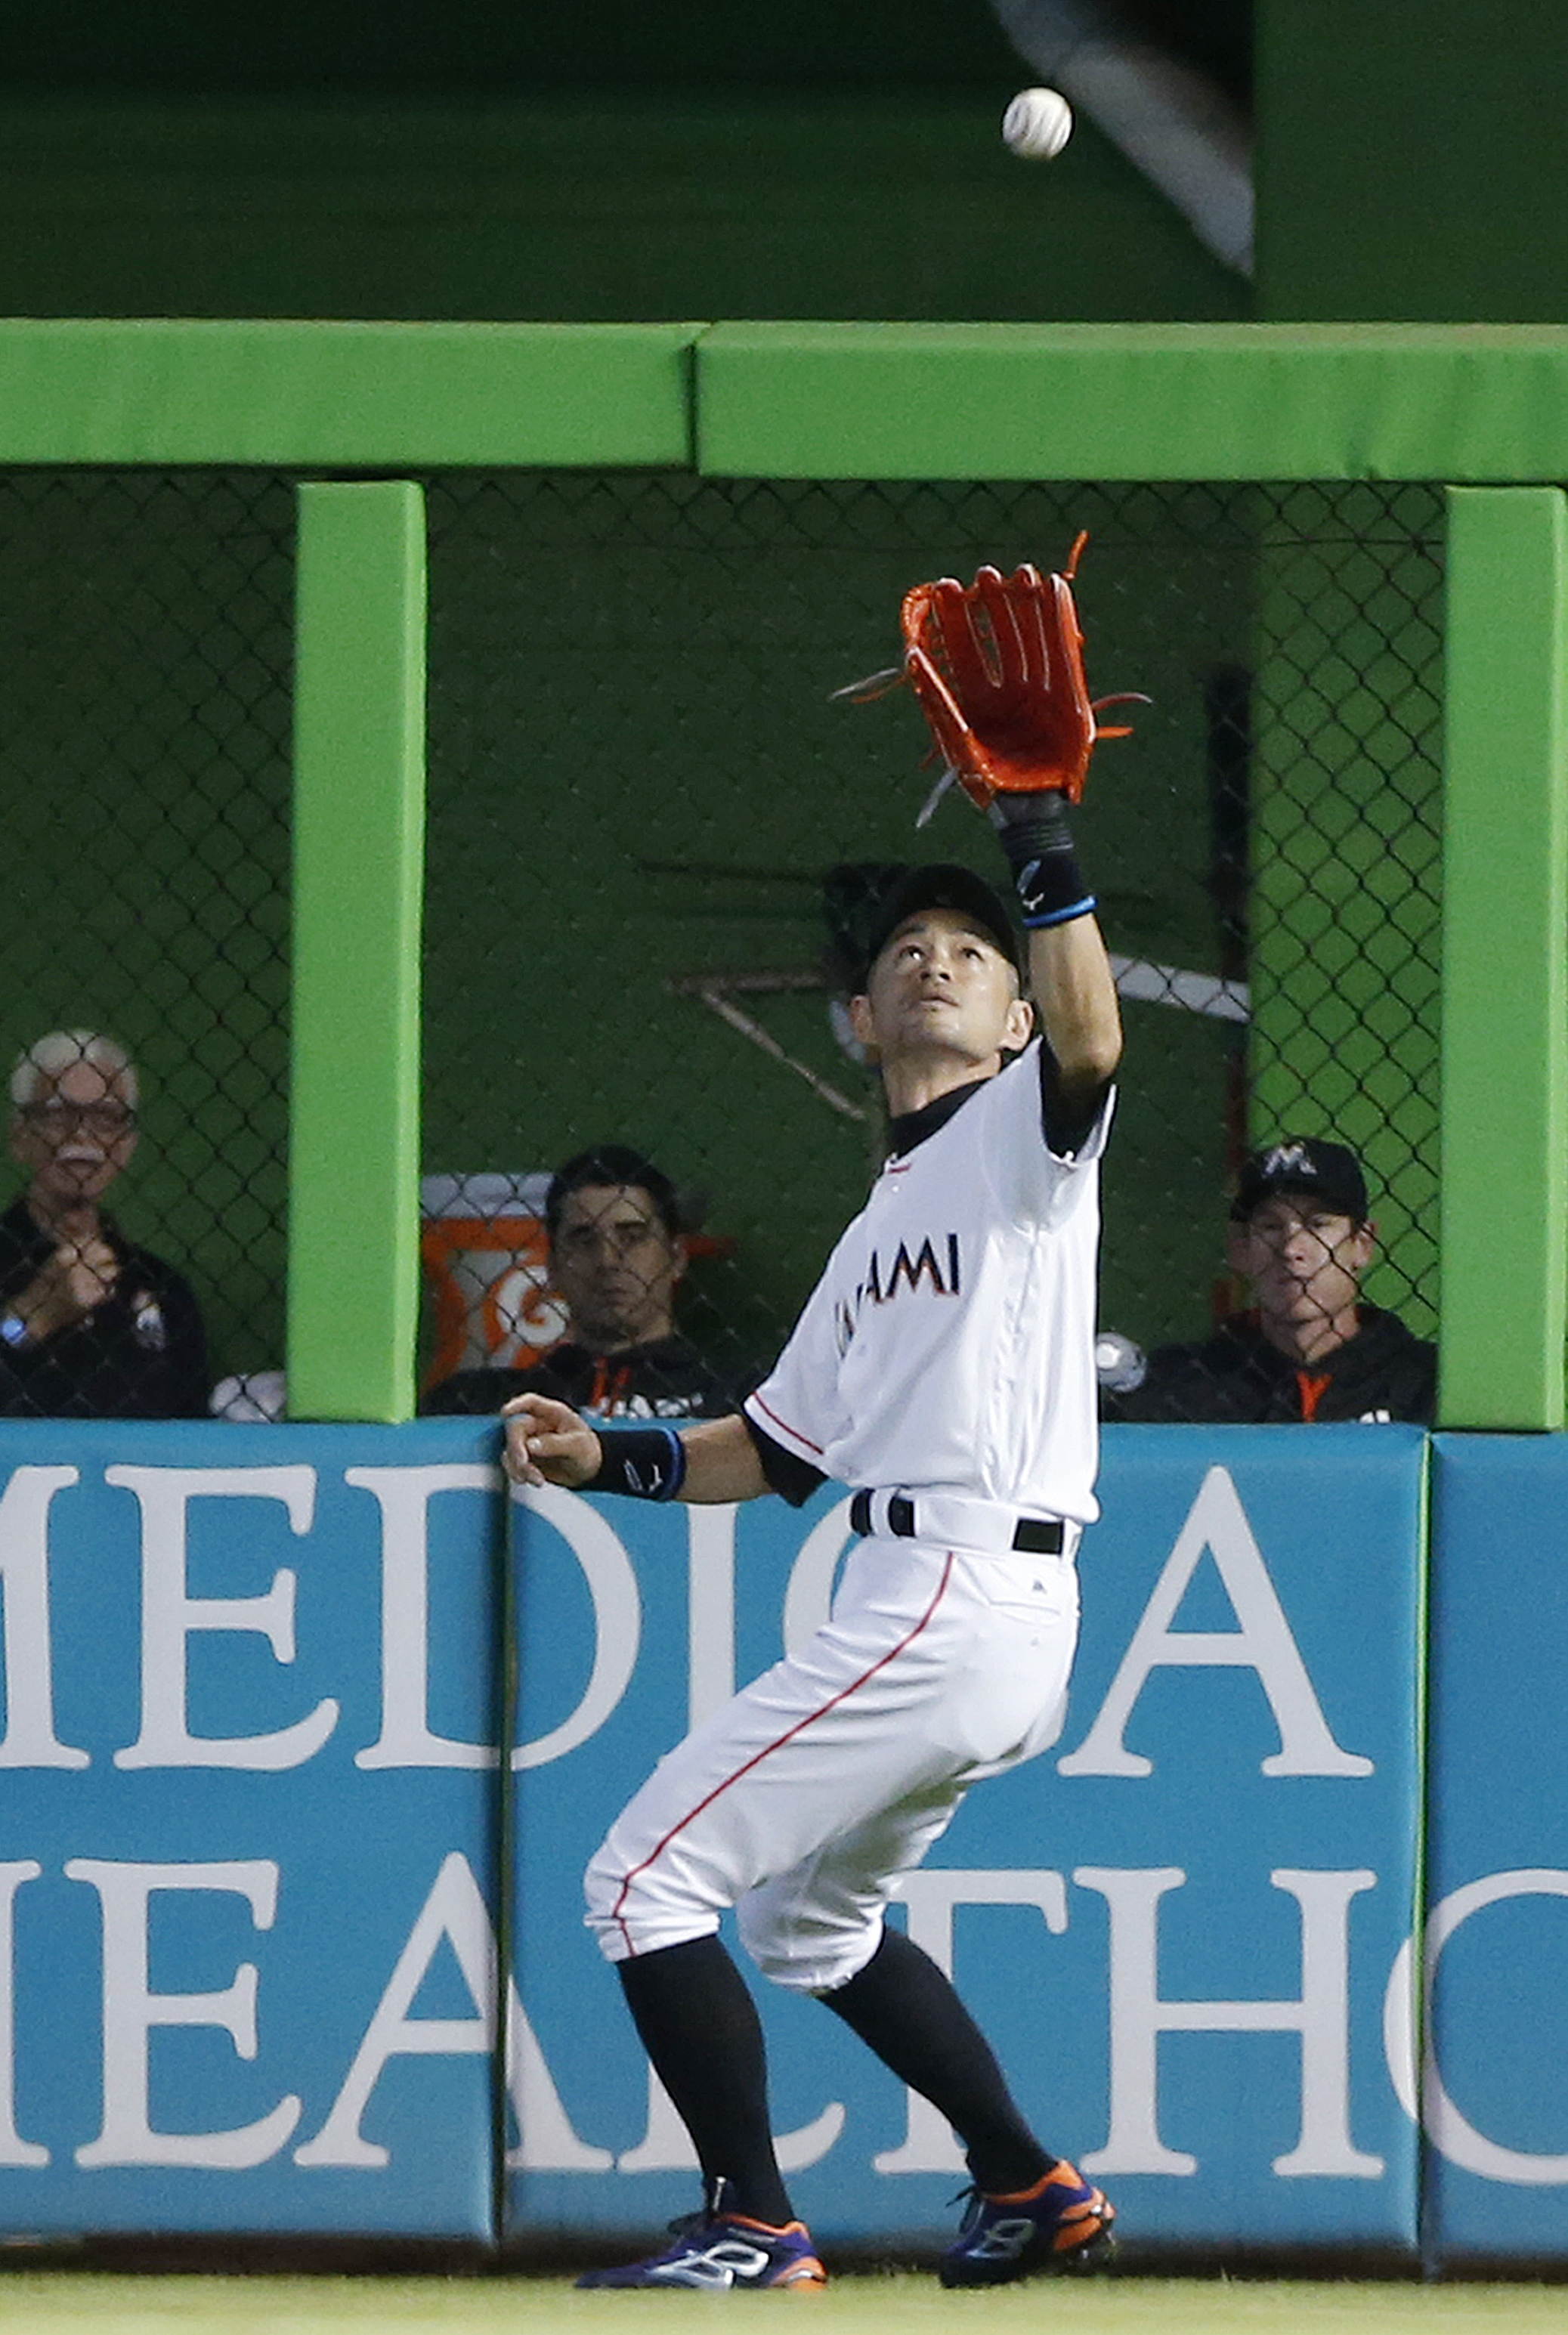 Miami Marlins right fielder Ichiro Suzuki, of Japan, catches a fly ball hit by San Francisco Giants' Eduardo Nunez during the first inning of a baseball game, Wednesday, Aug. 10, 2016, in Miami. (AP Photo/Wilfredo Lee)